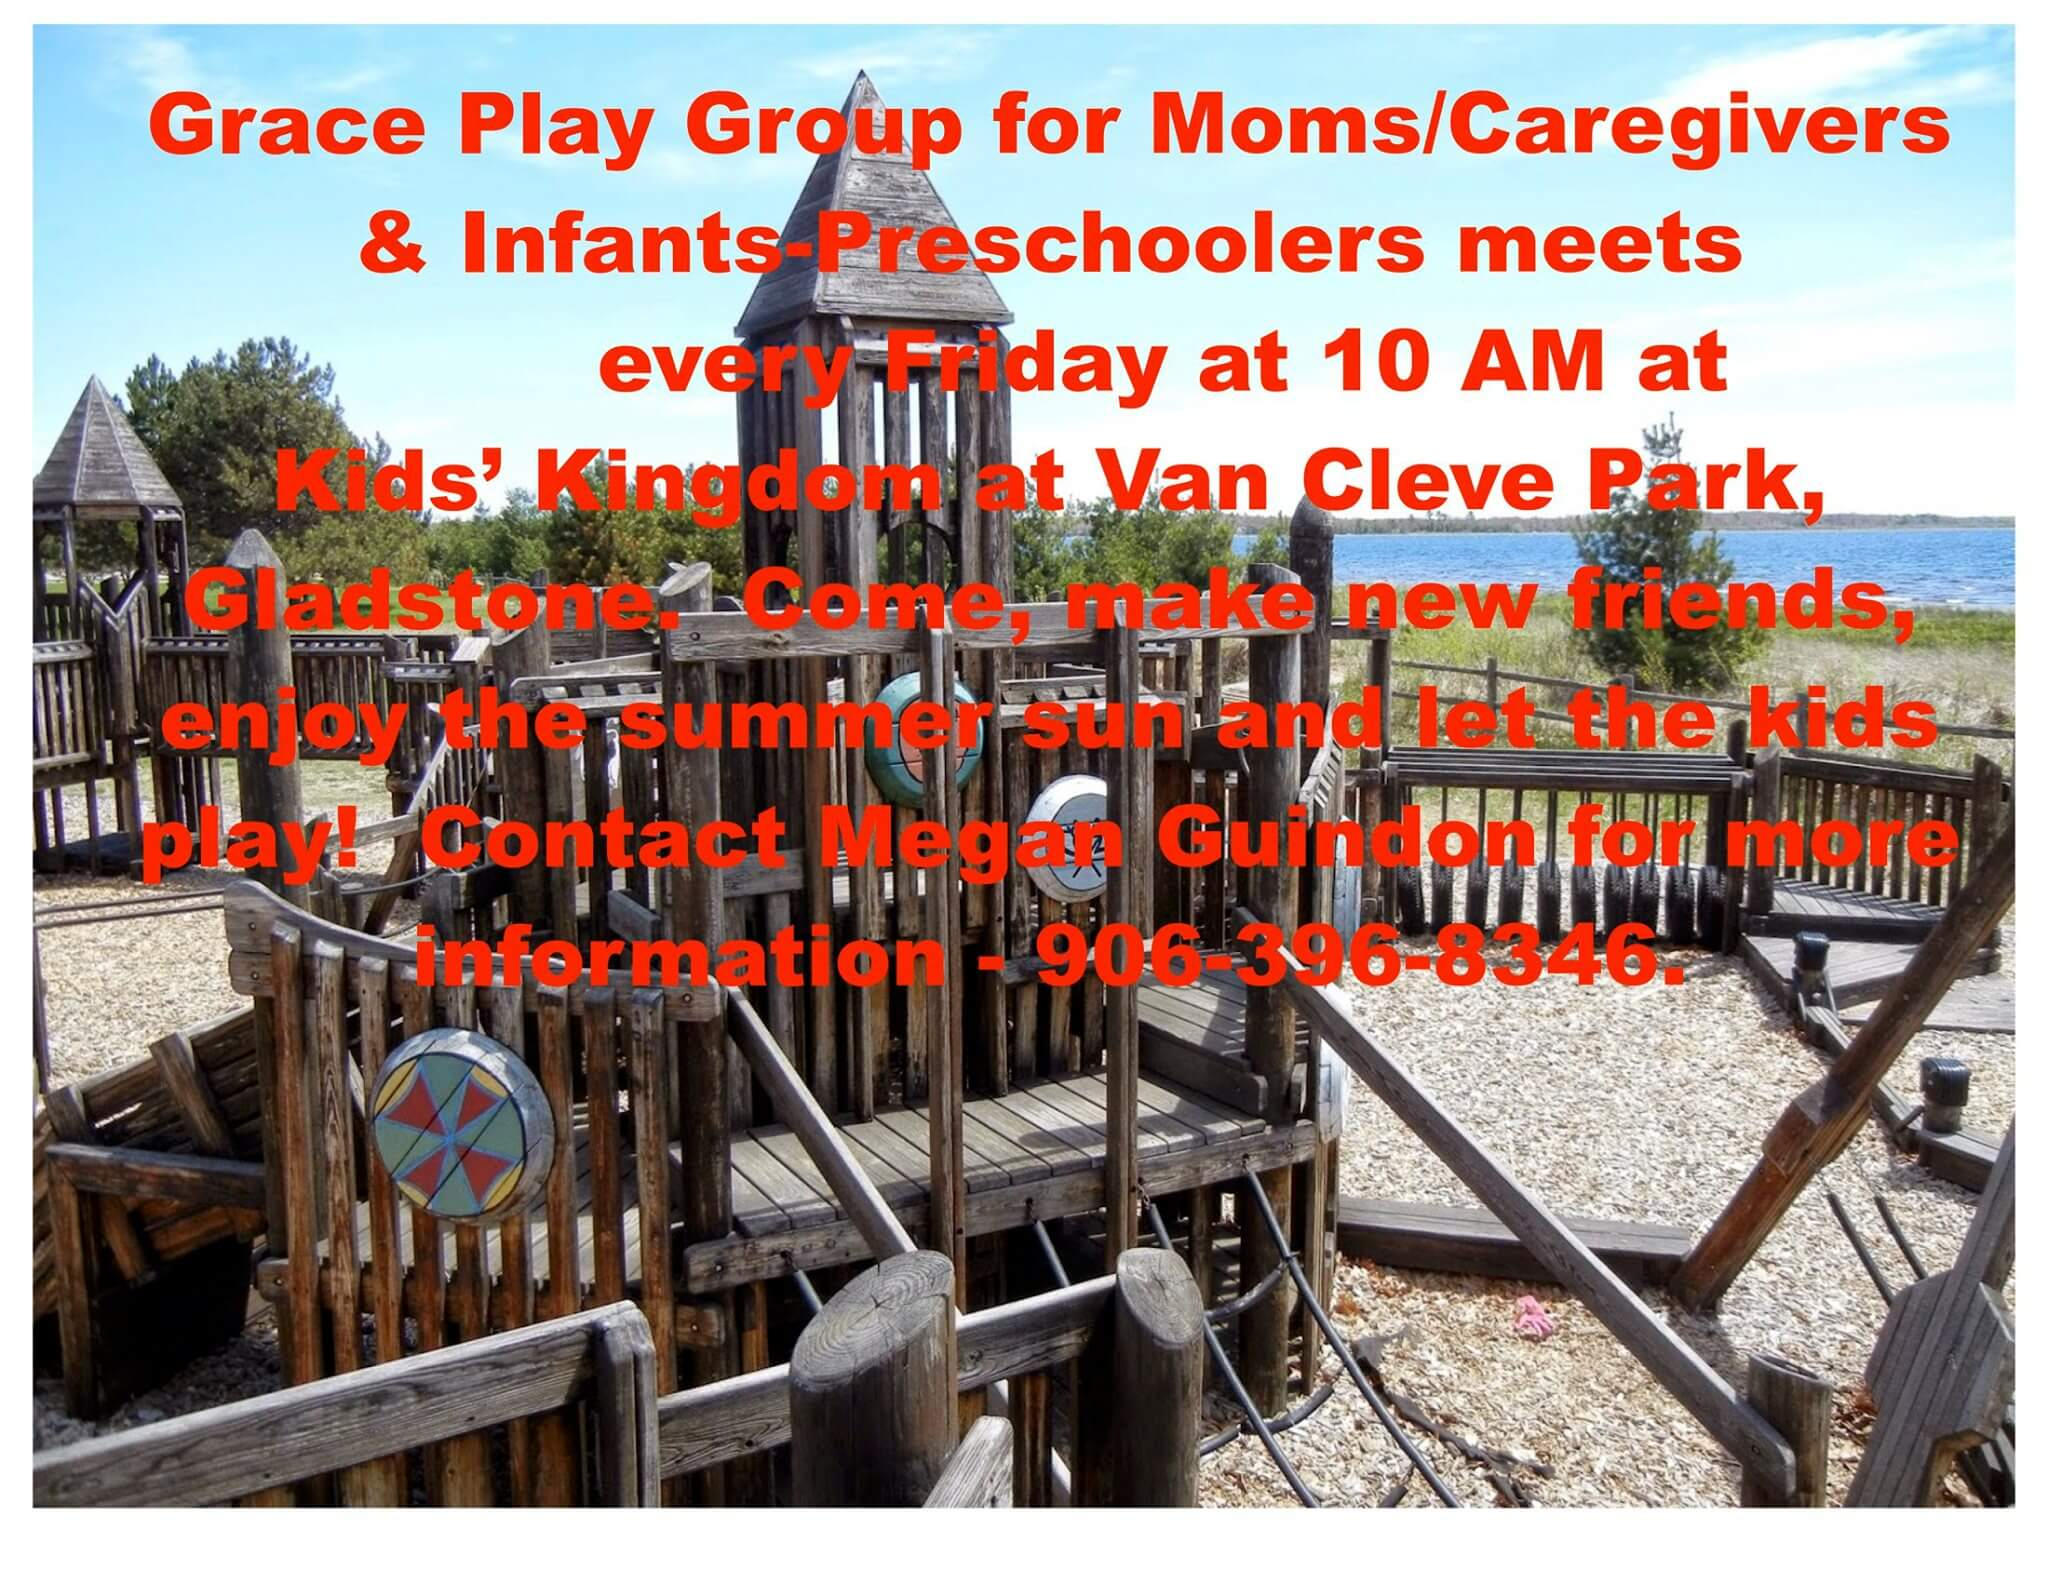 Grace Play Group for Moms/Caregivers & Infants-Preschoolers meets every Friday at 10 am at Kid's Kingdom at Van Cleve Park, Gladstone. Come, make new friends, enjoy the Summer sun adn let the kids play! Contact megan Guidon for more information 906-396-8346.